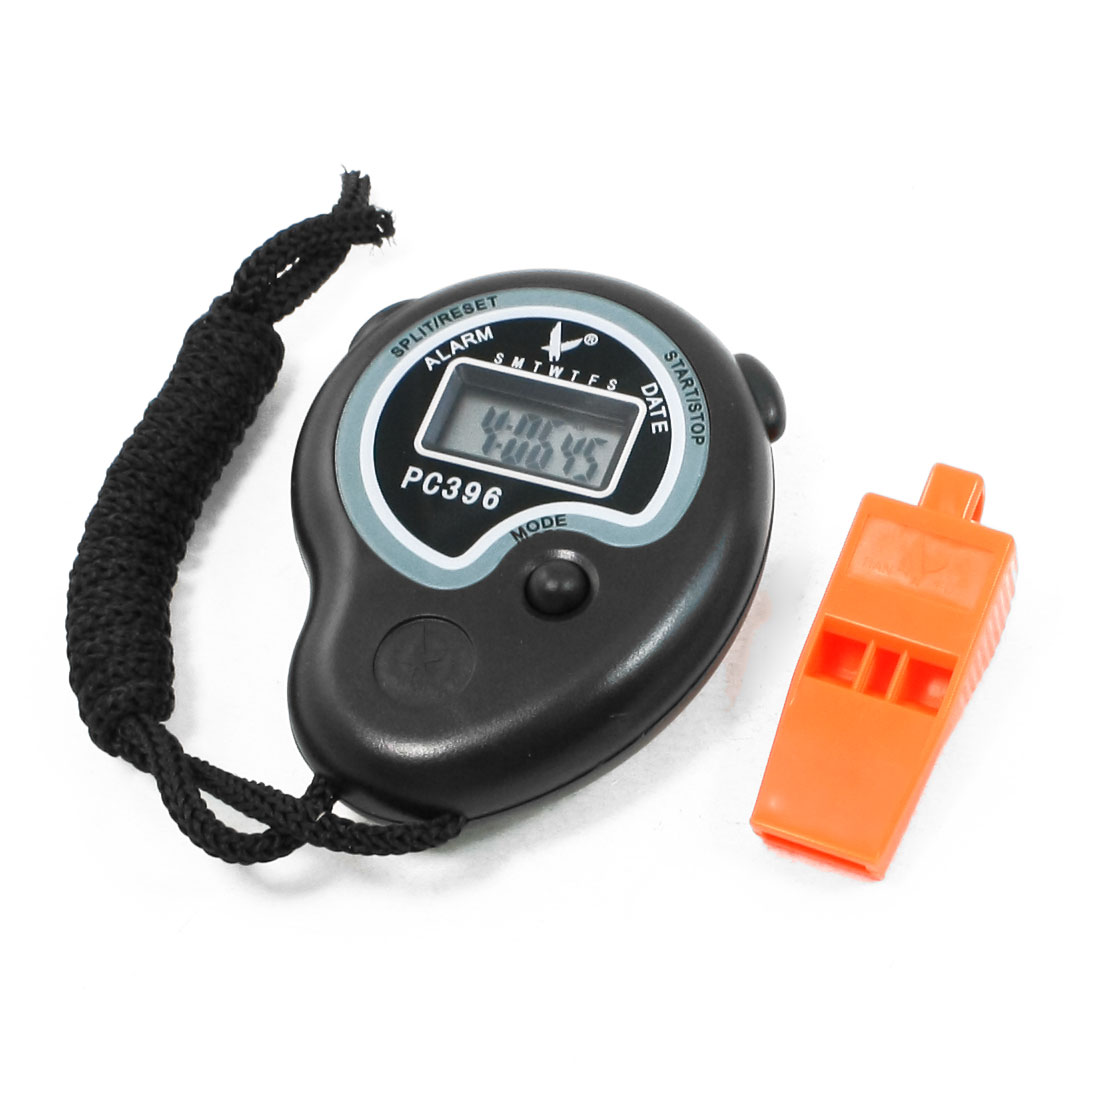 2 in 1 Sports Training LCD Digital Chronograph Timer Stopwatch + Whistle Set